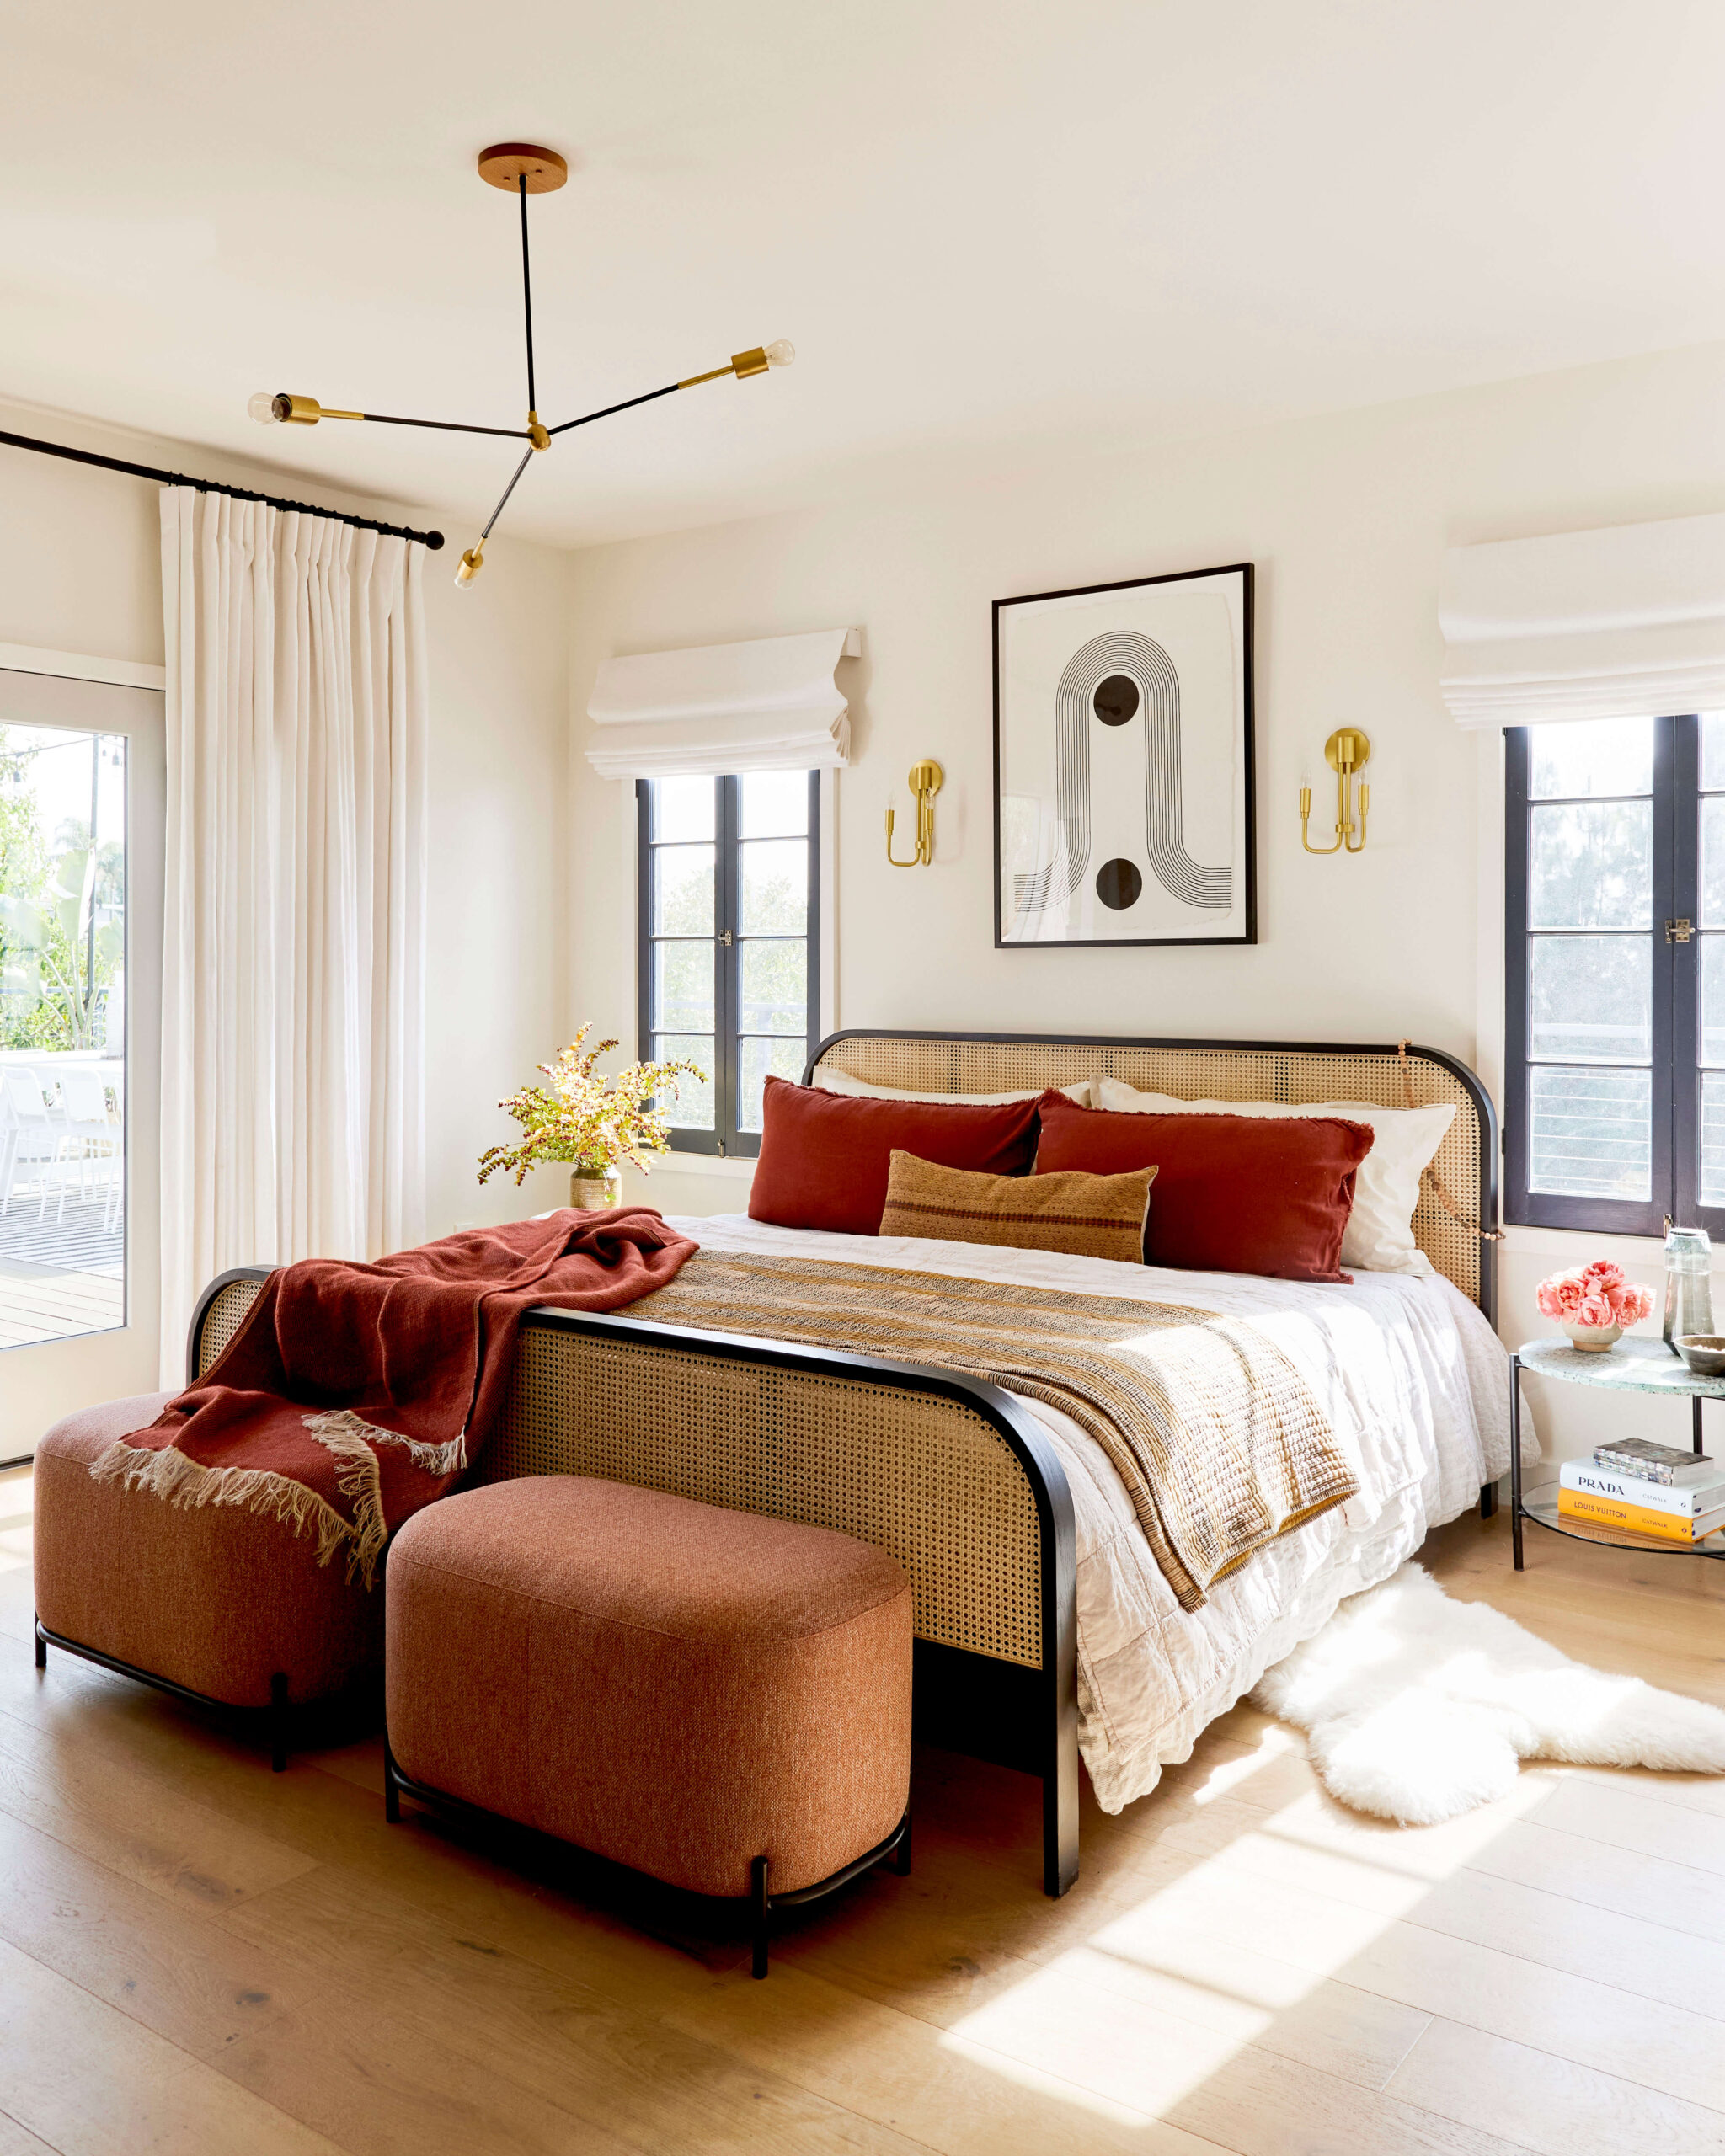 GINNY_MACDONALD_JACLYN_JOHNSON_BEDROOM_CANE_BED